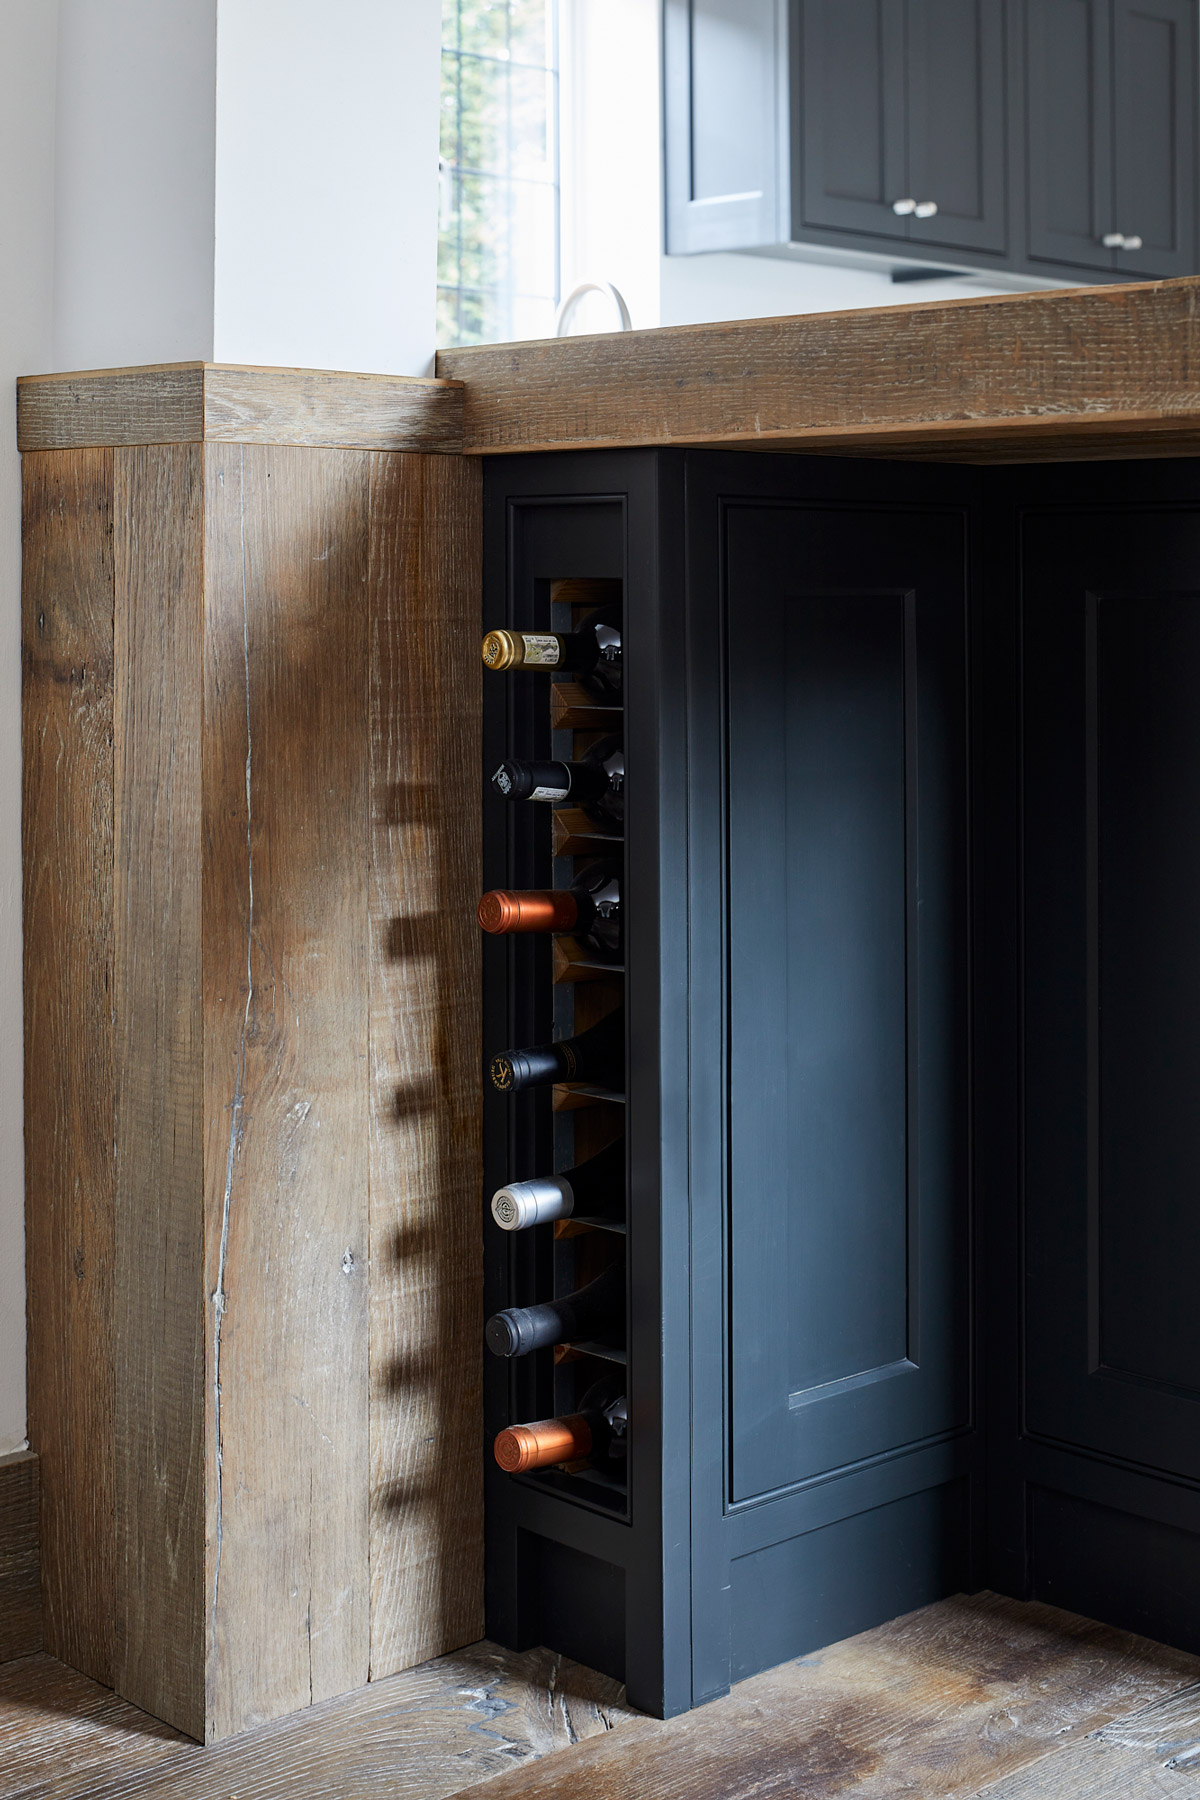 Slim kitchen wine rack in painted cabinets